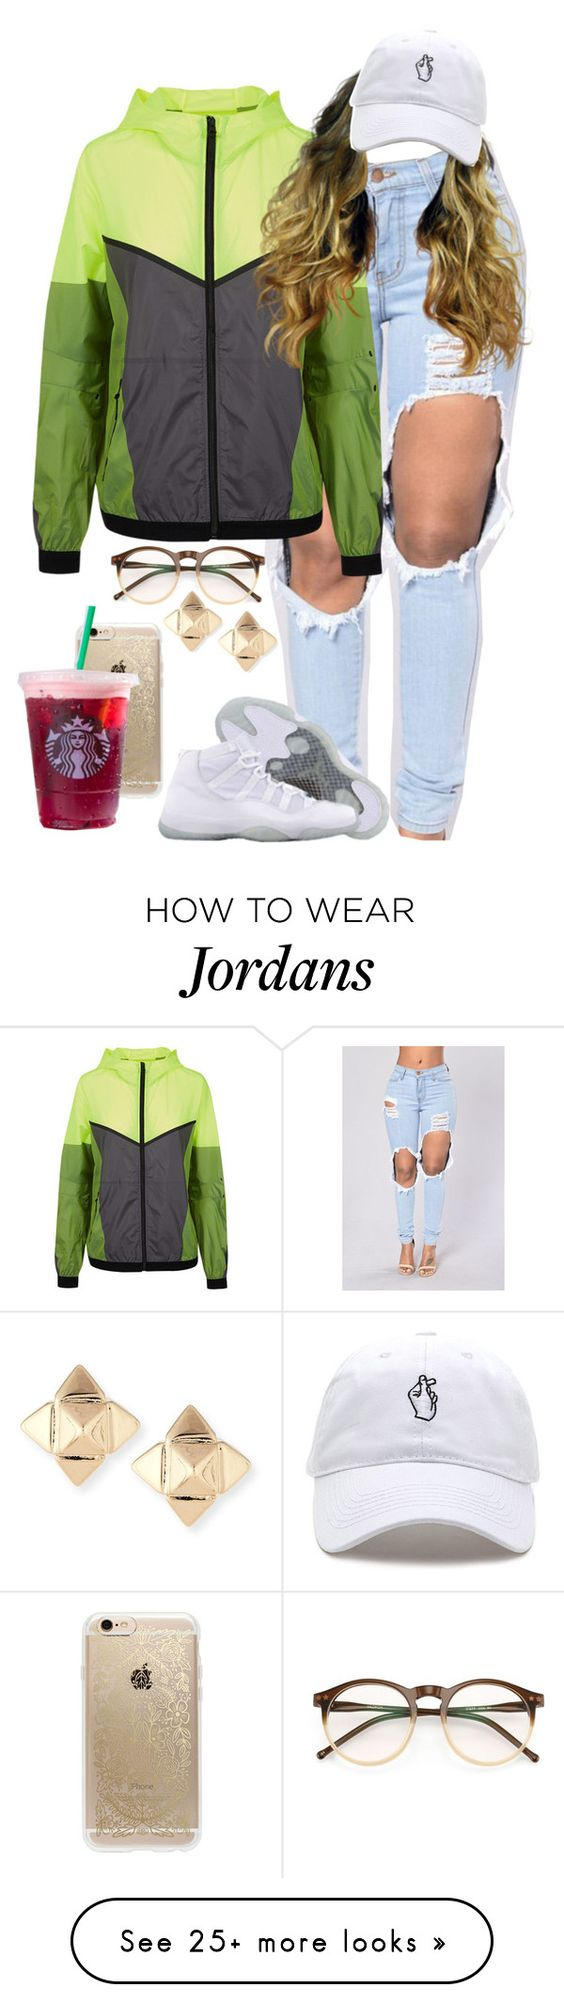 """""""9.14.16"""" by mcmlxxi on Polyvore featuring NIKE, Retrò, Wildfox, Rifle Paper Co and Valentino"""